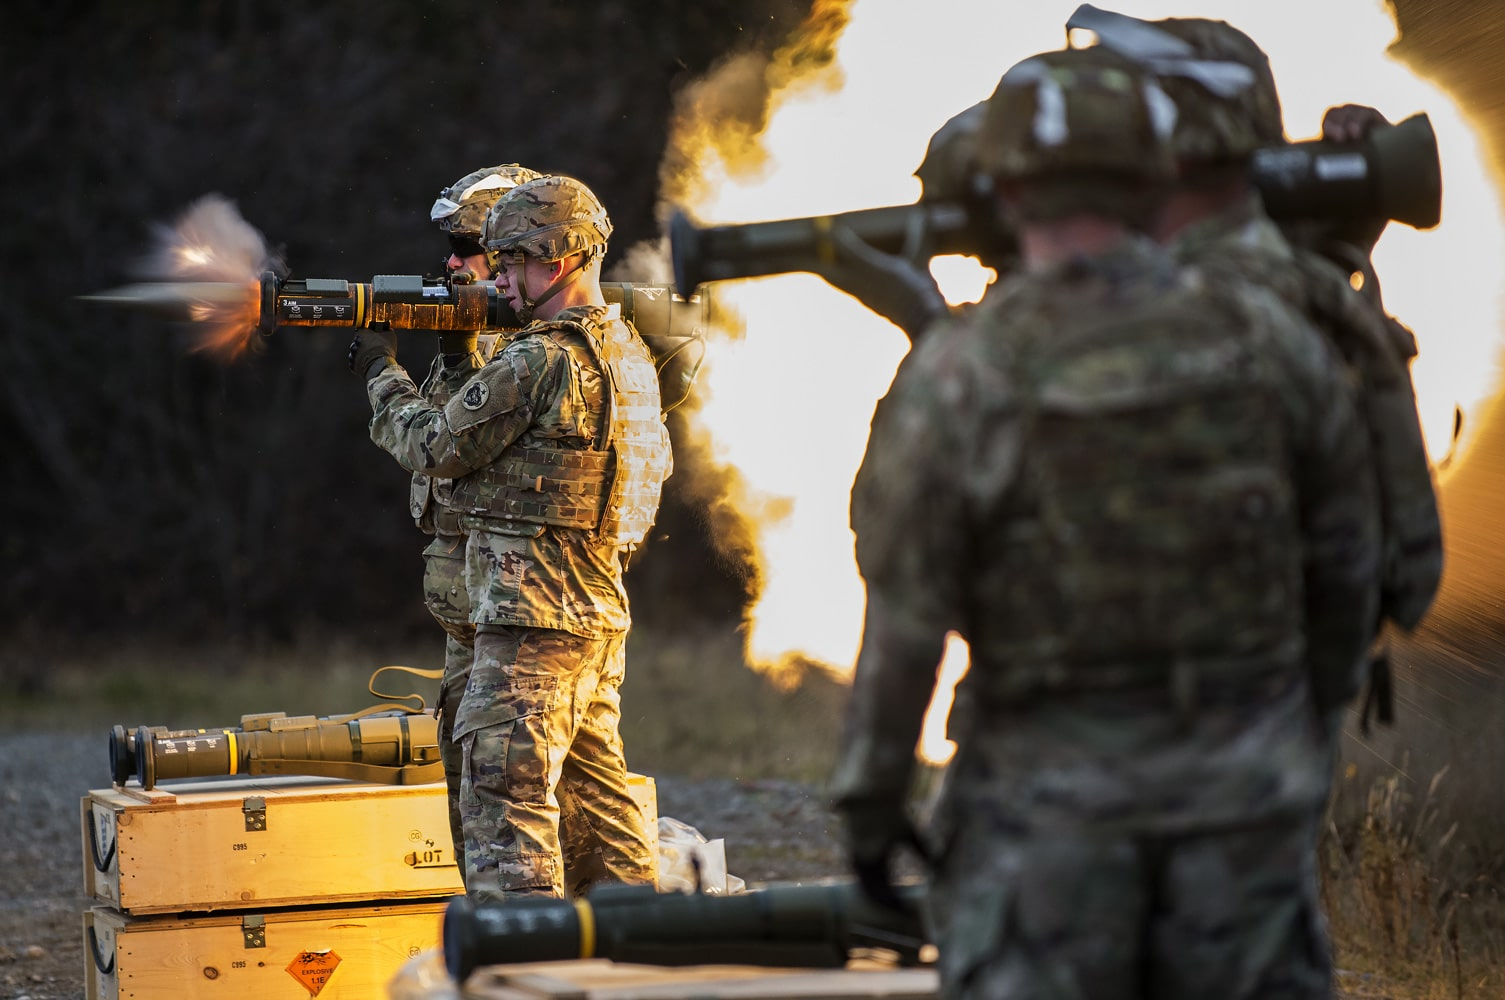 United States Army 1st Lt. Gerard Holodak, assigned to the 109th Transportation Company, 17th Combat Sustainment Support Battalion, U.S. Army Alaska, fires the M136E1 AT4-CS confined space light anti-armor weapon at Joint Base Elmendorf-Richardson, Alaska.